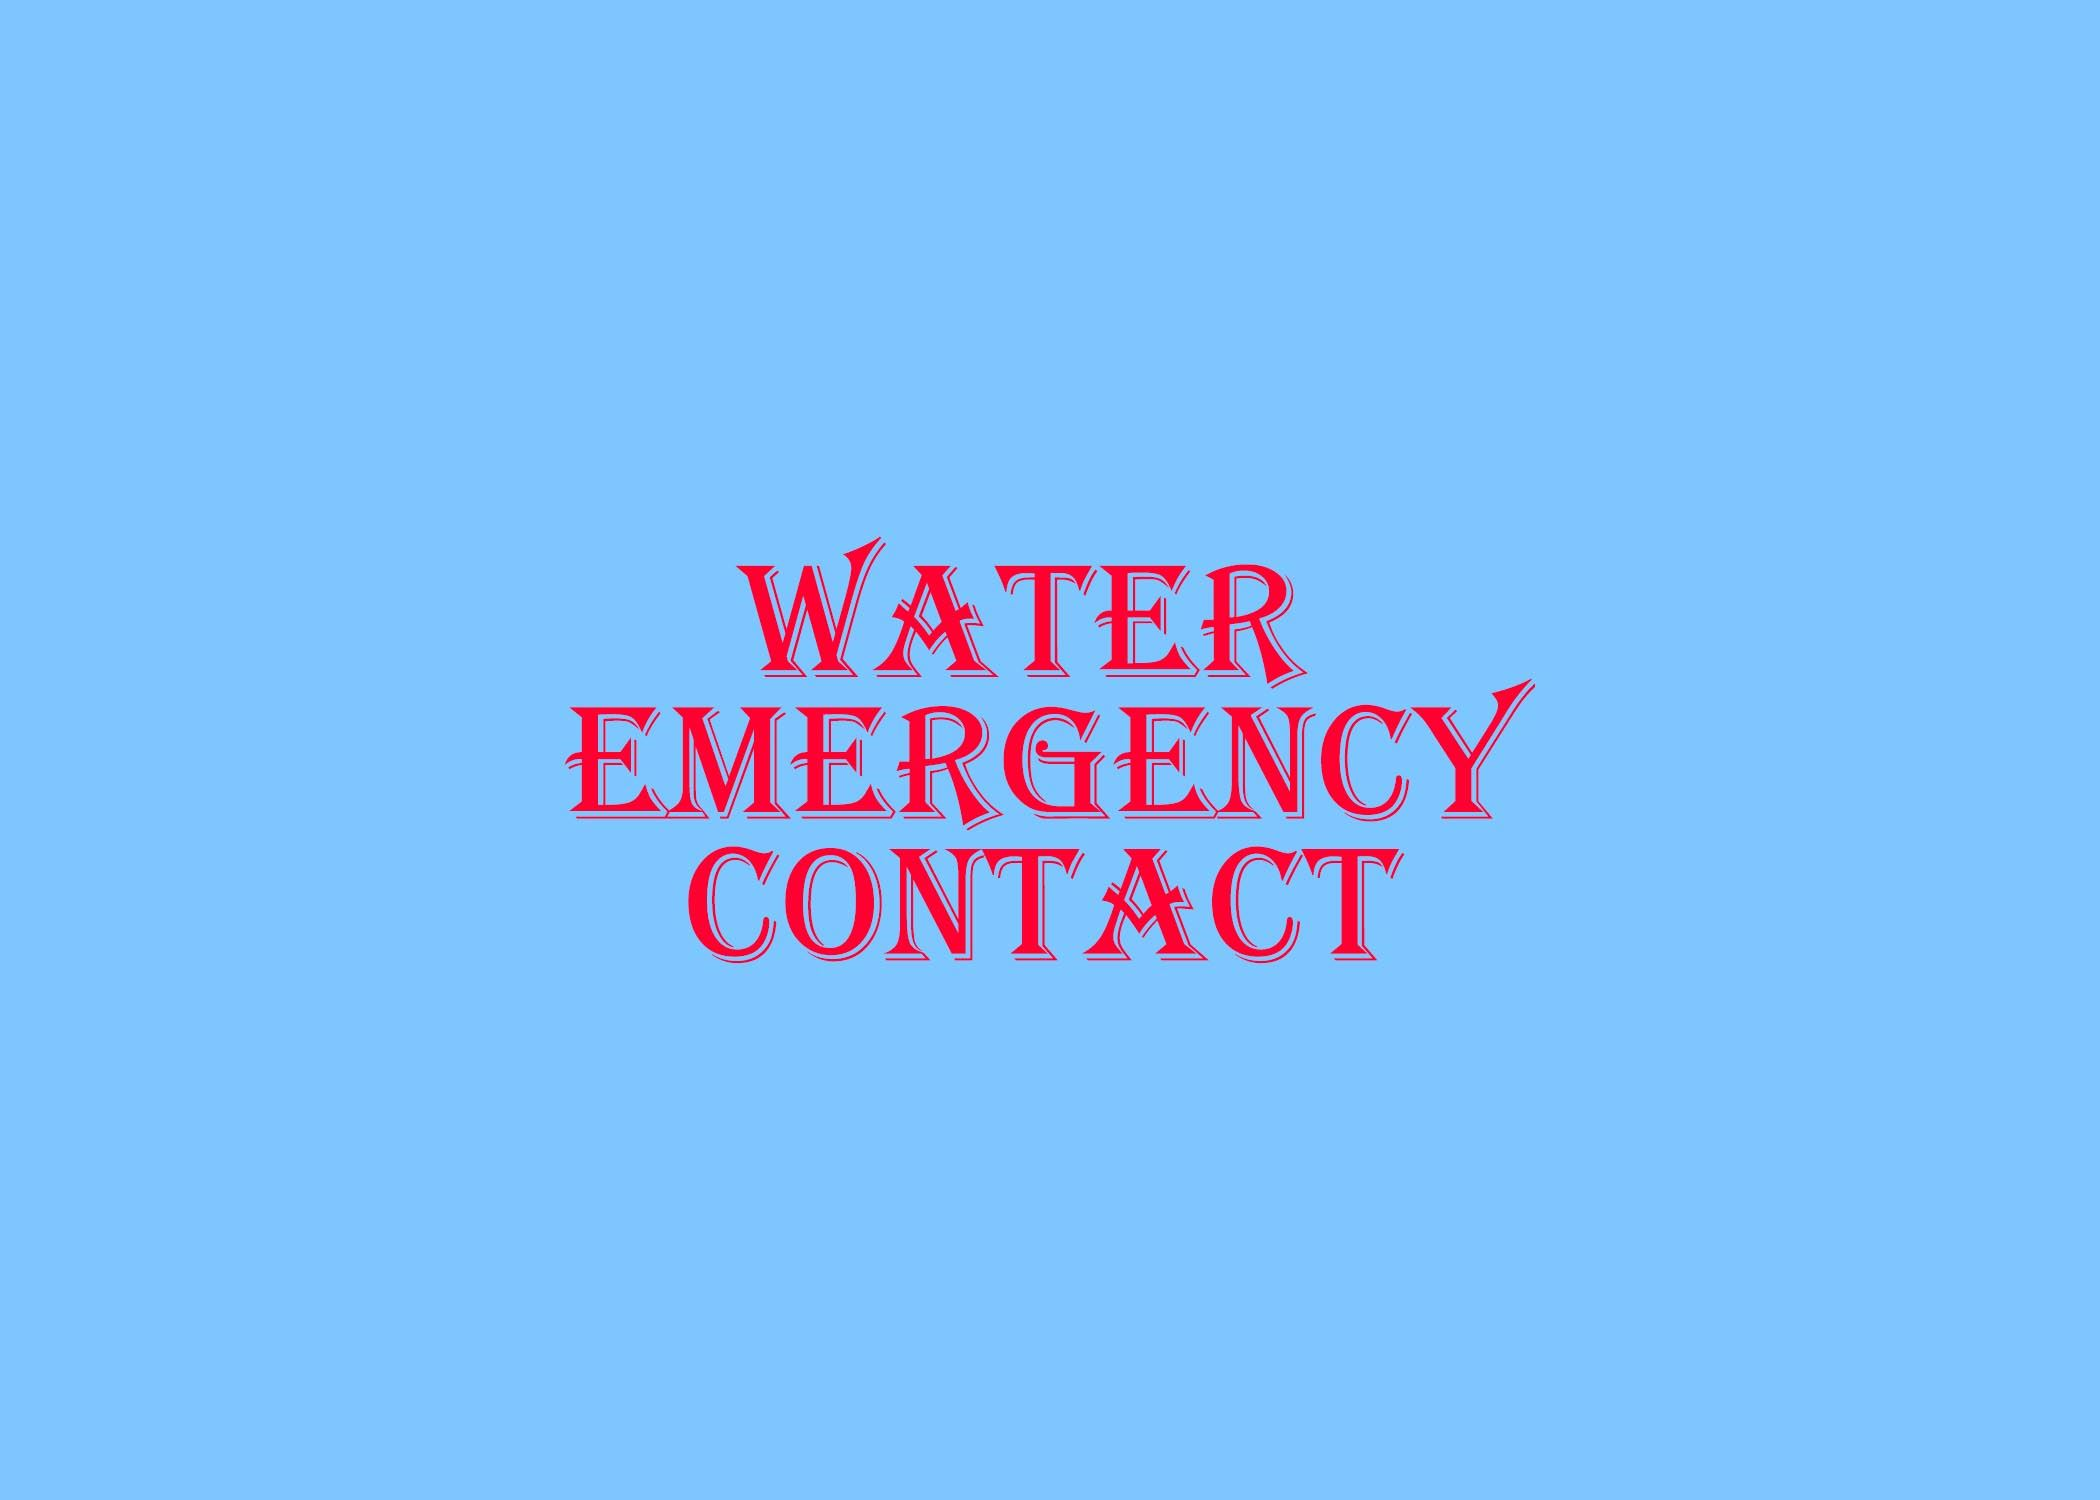 WaterEmergency